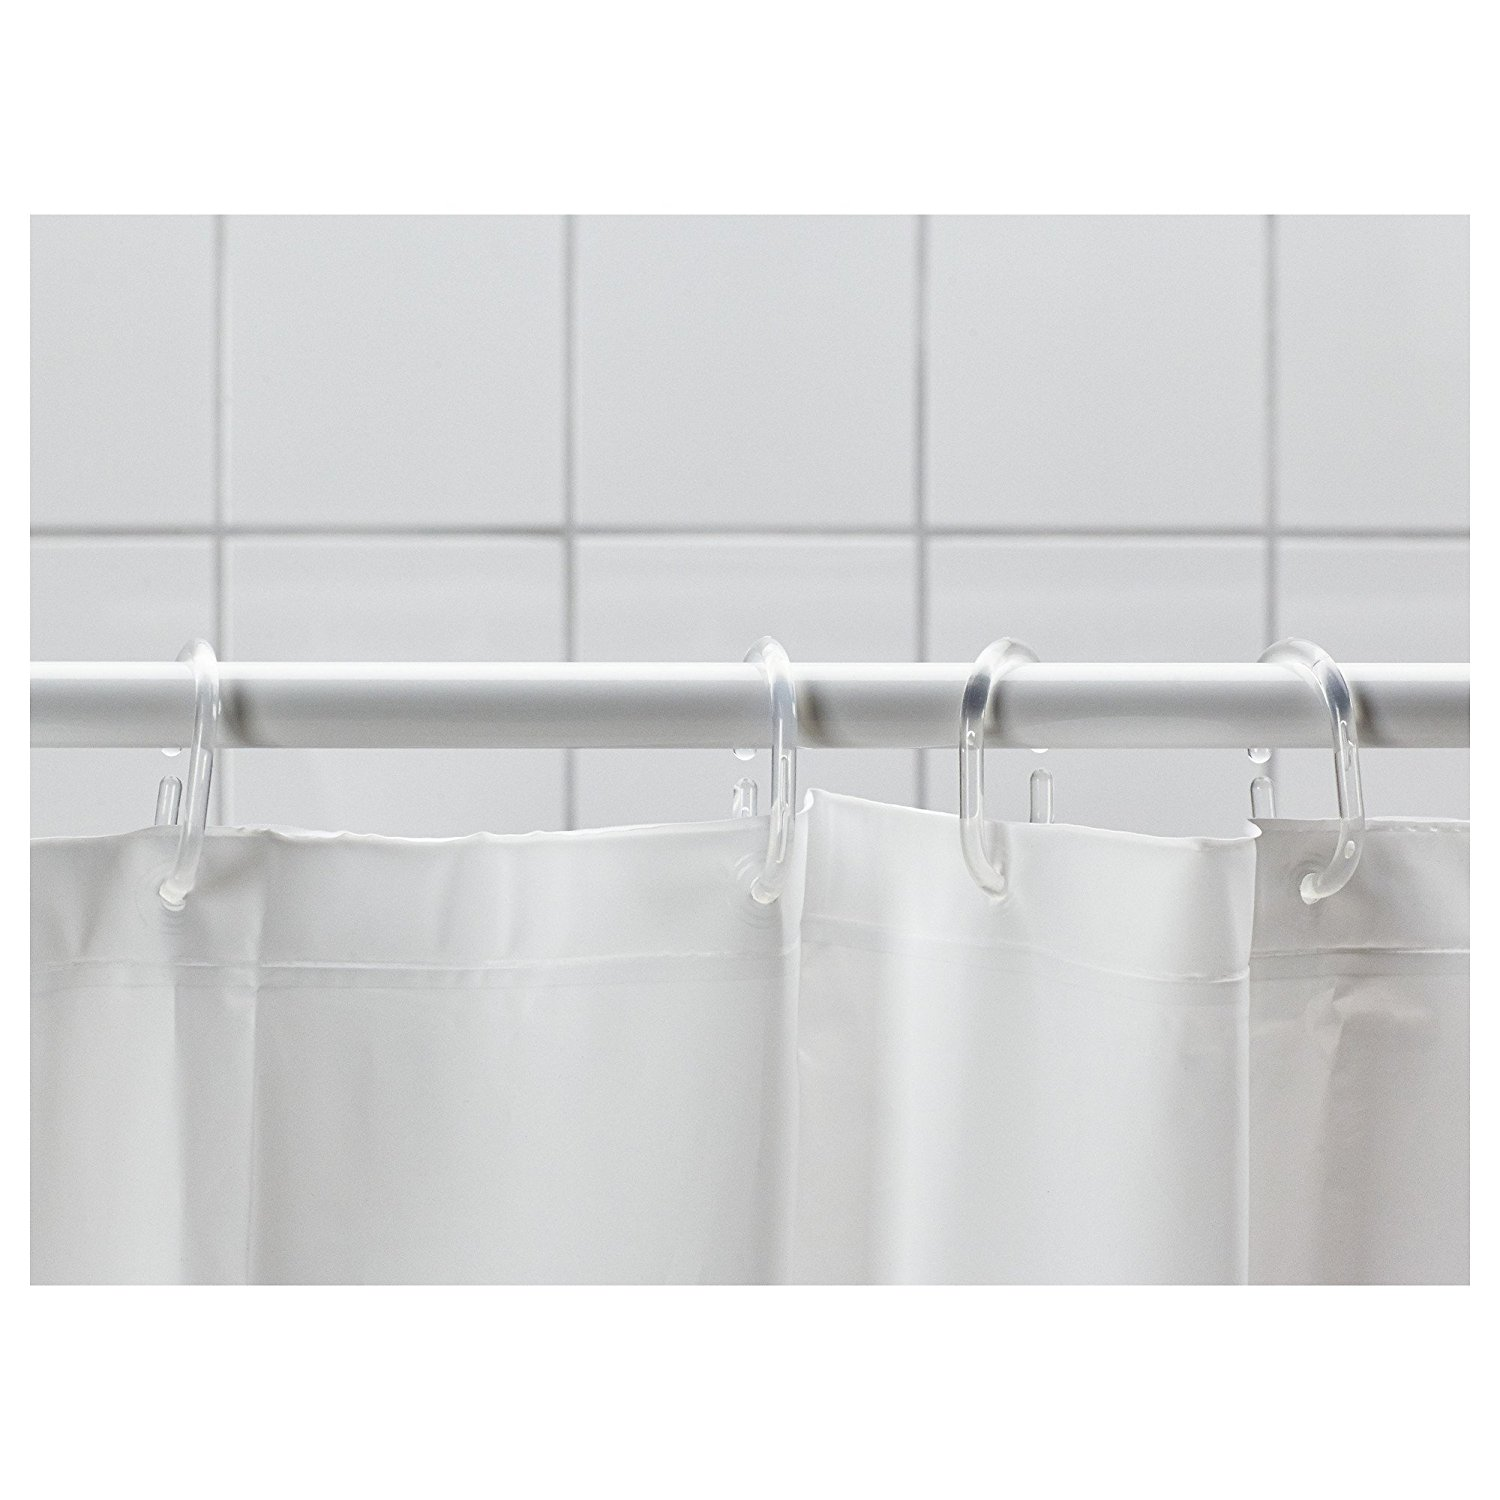 Ikea Shower Curtain for Best Your Bathroom Decoration: Spring Loaded Curtain Rod Ikea | Shower Curtain Length | Ikea Shower Curtain